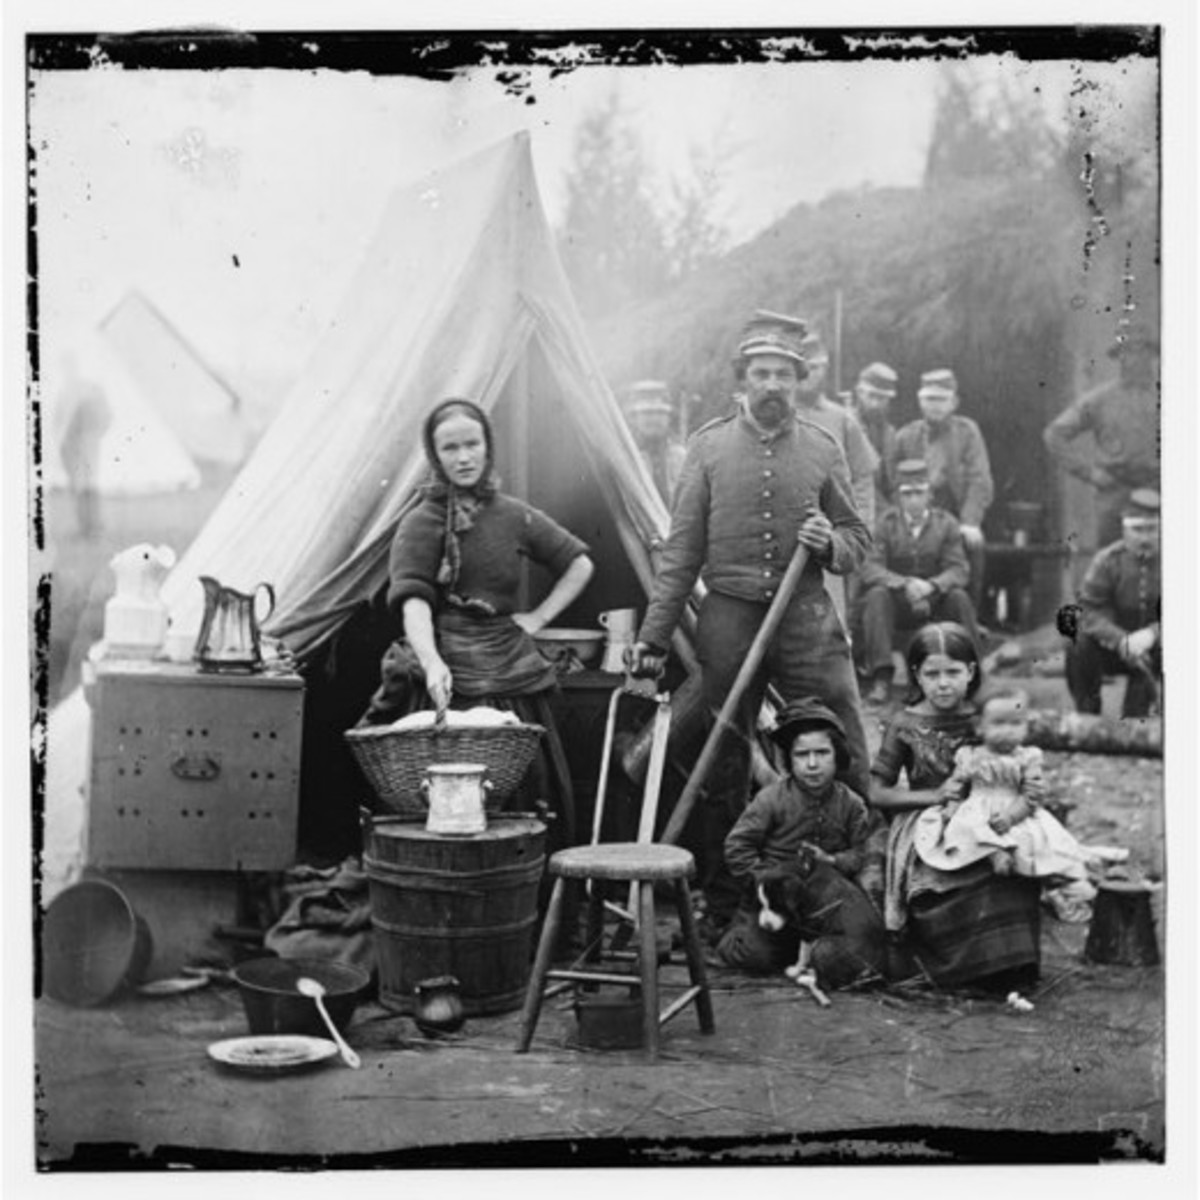 A wife and three children join a soldier in his camp. The wife holds a basket of laundry, so this was no holiday outing for her